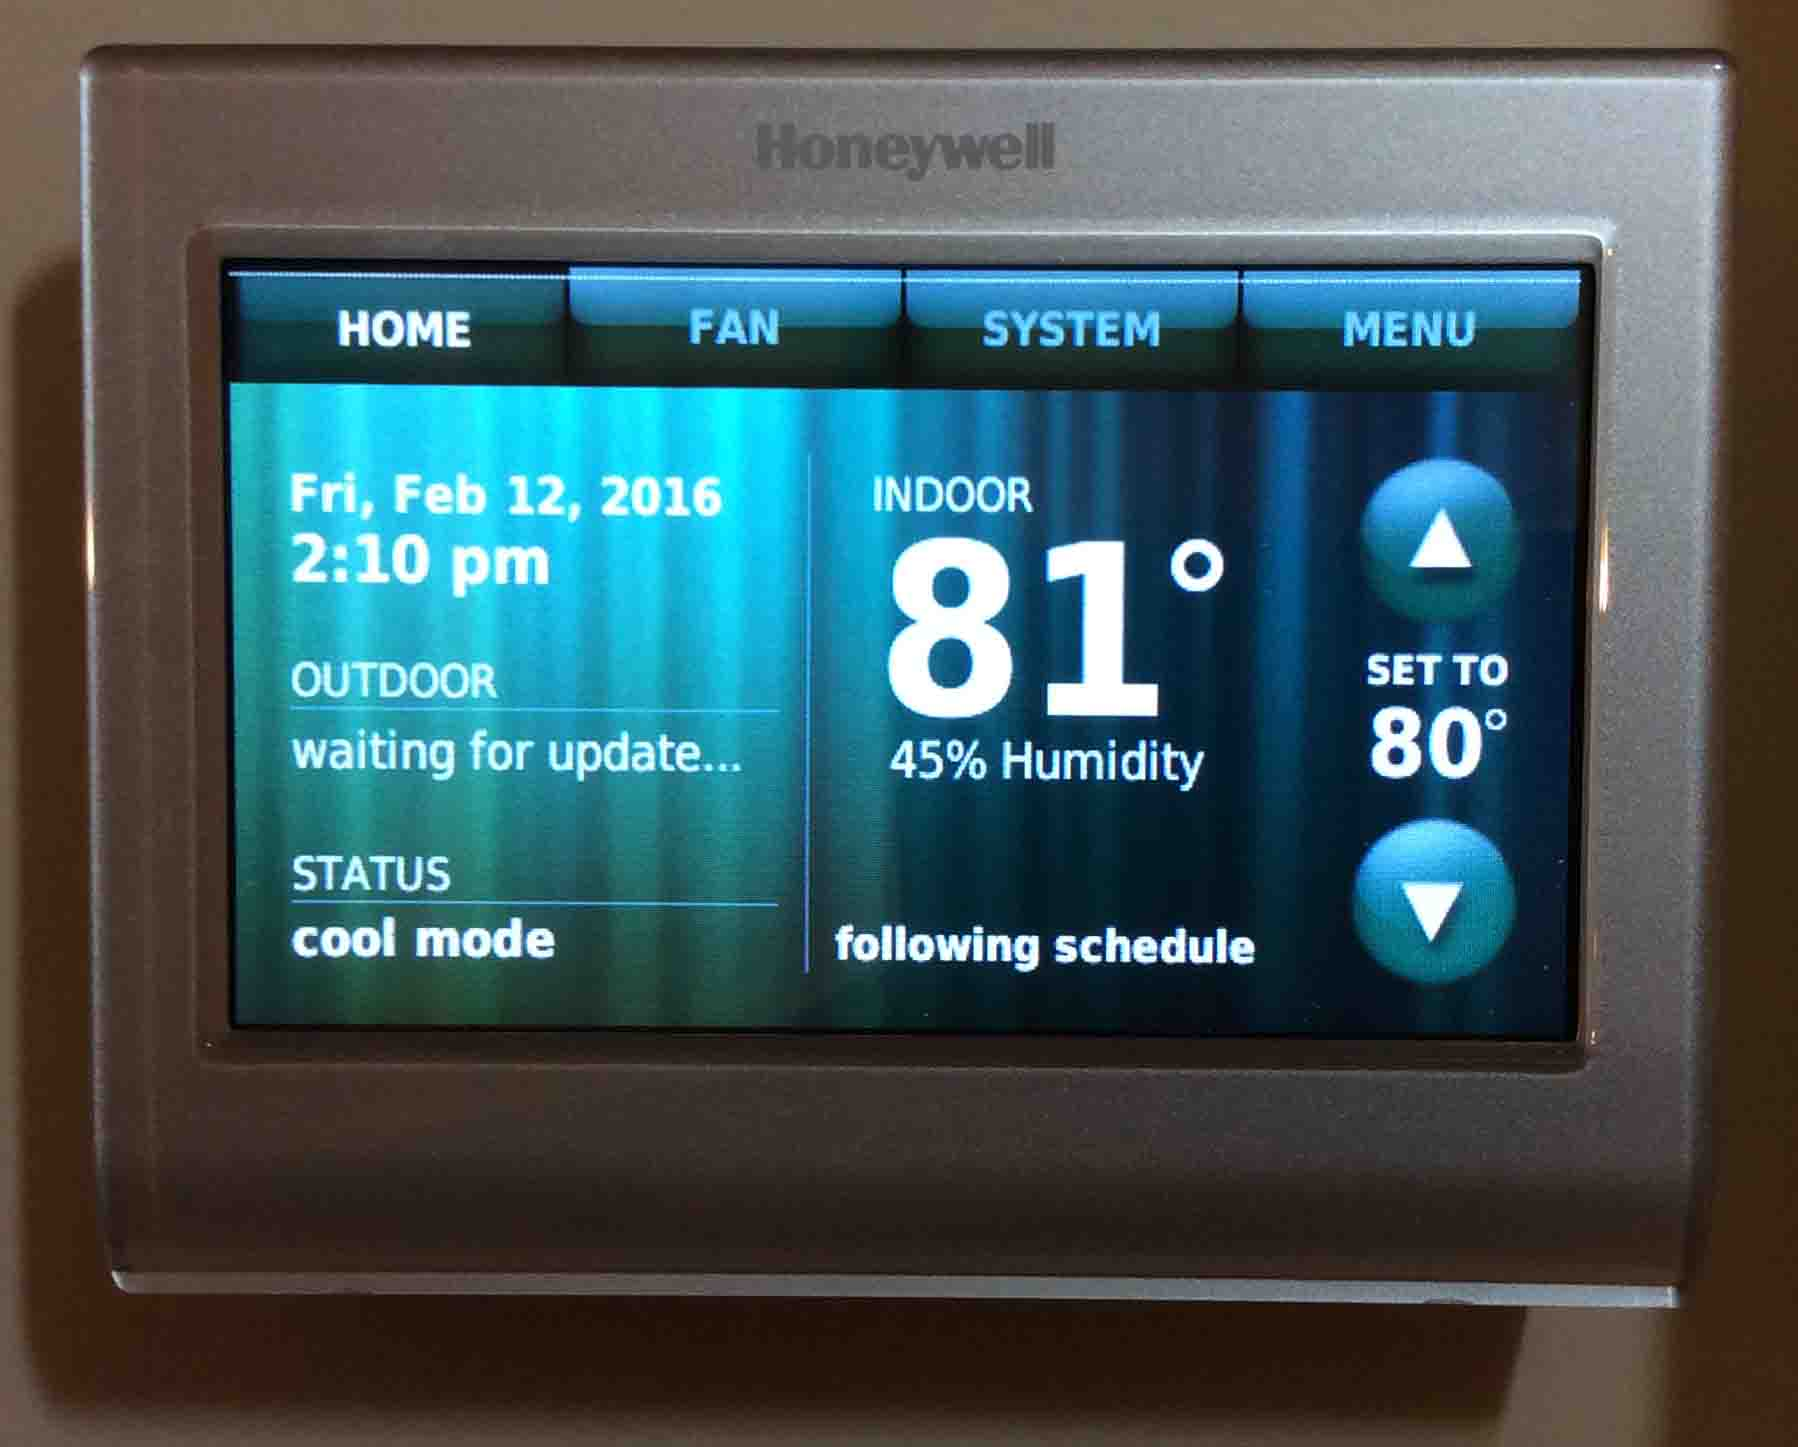 HoneywellRTH9580WFSmartThermostatFrontView_002 honeywell smart thermostat wiring instructions rth9580wf tom's Honeywell RTH9580WF Manual at n-0.co